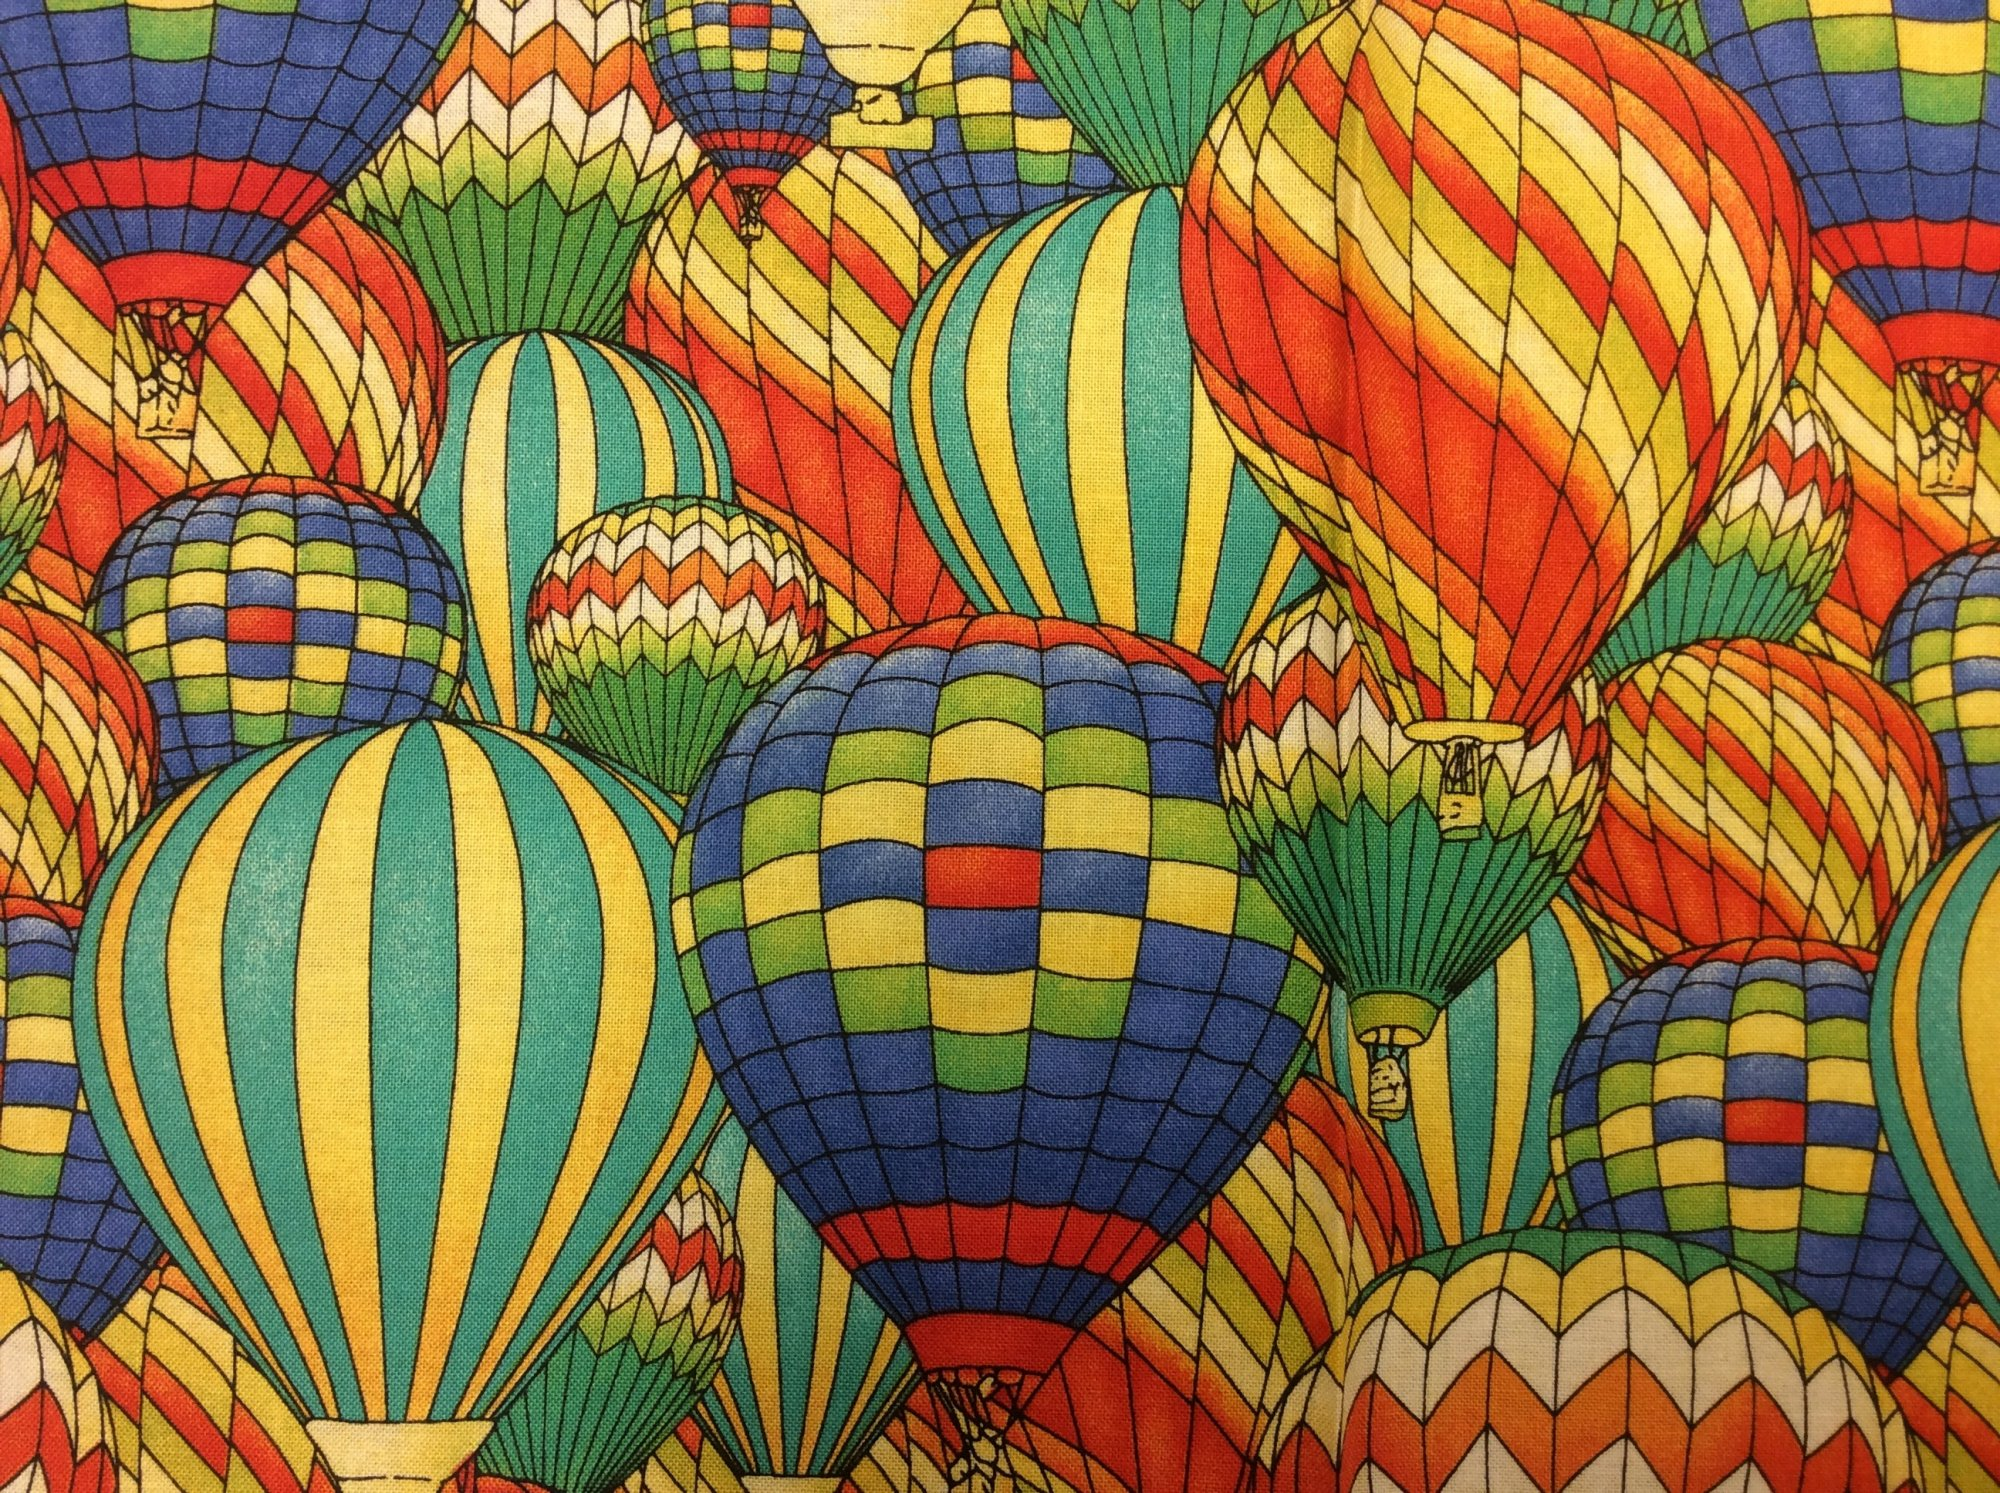 Hot Air Balloons Adventure Awaits Cotton Quilt Fabric WI105